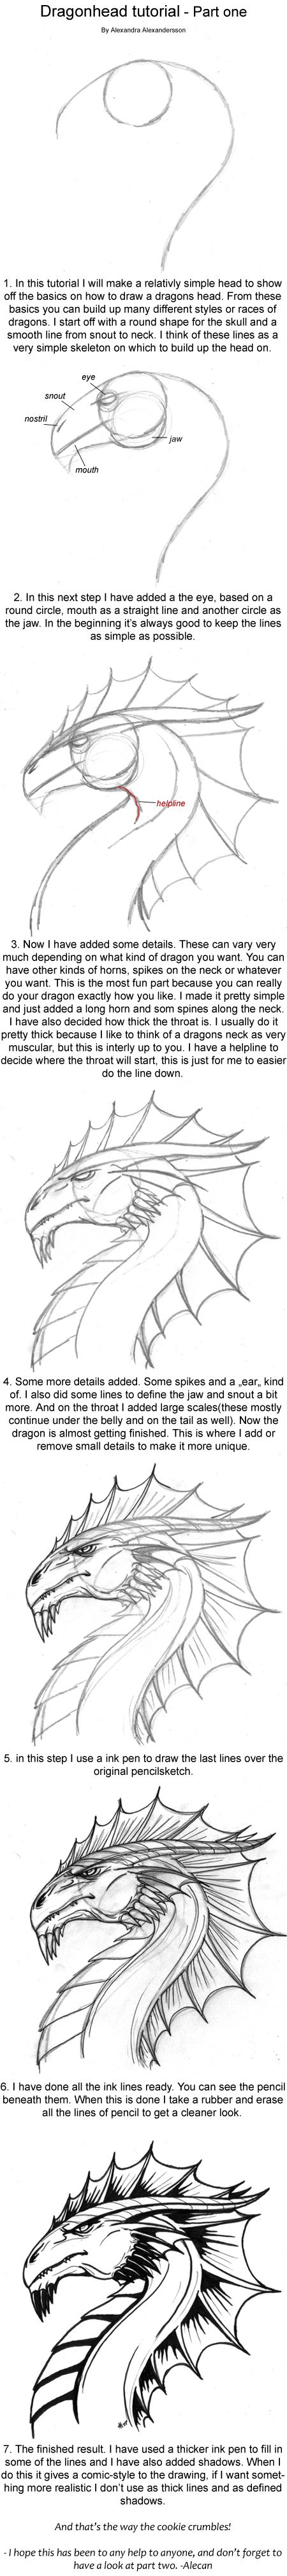 Dragonhead Tutorial Part One By Alecan On Deviantart